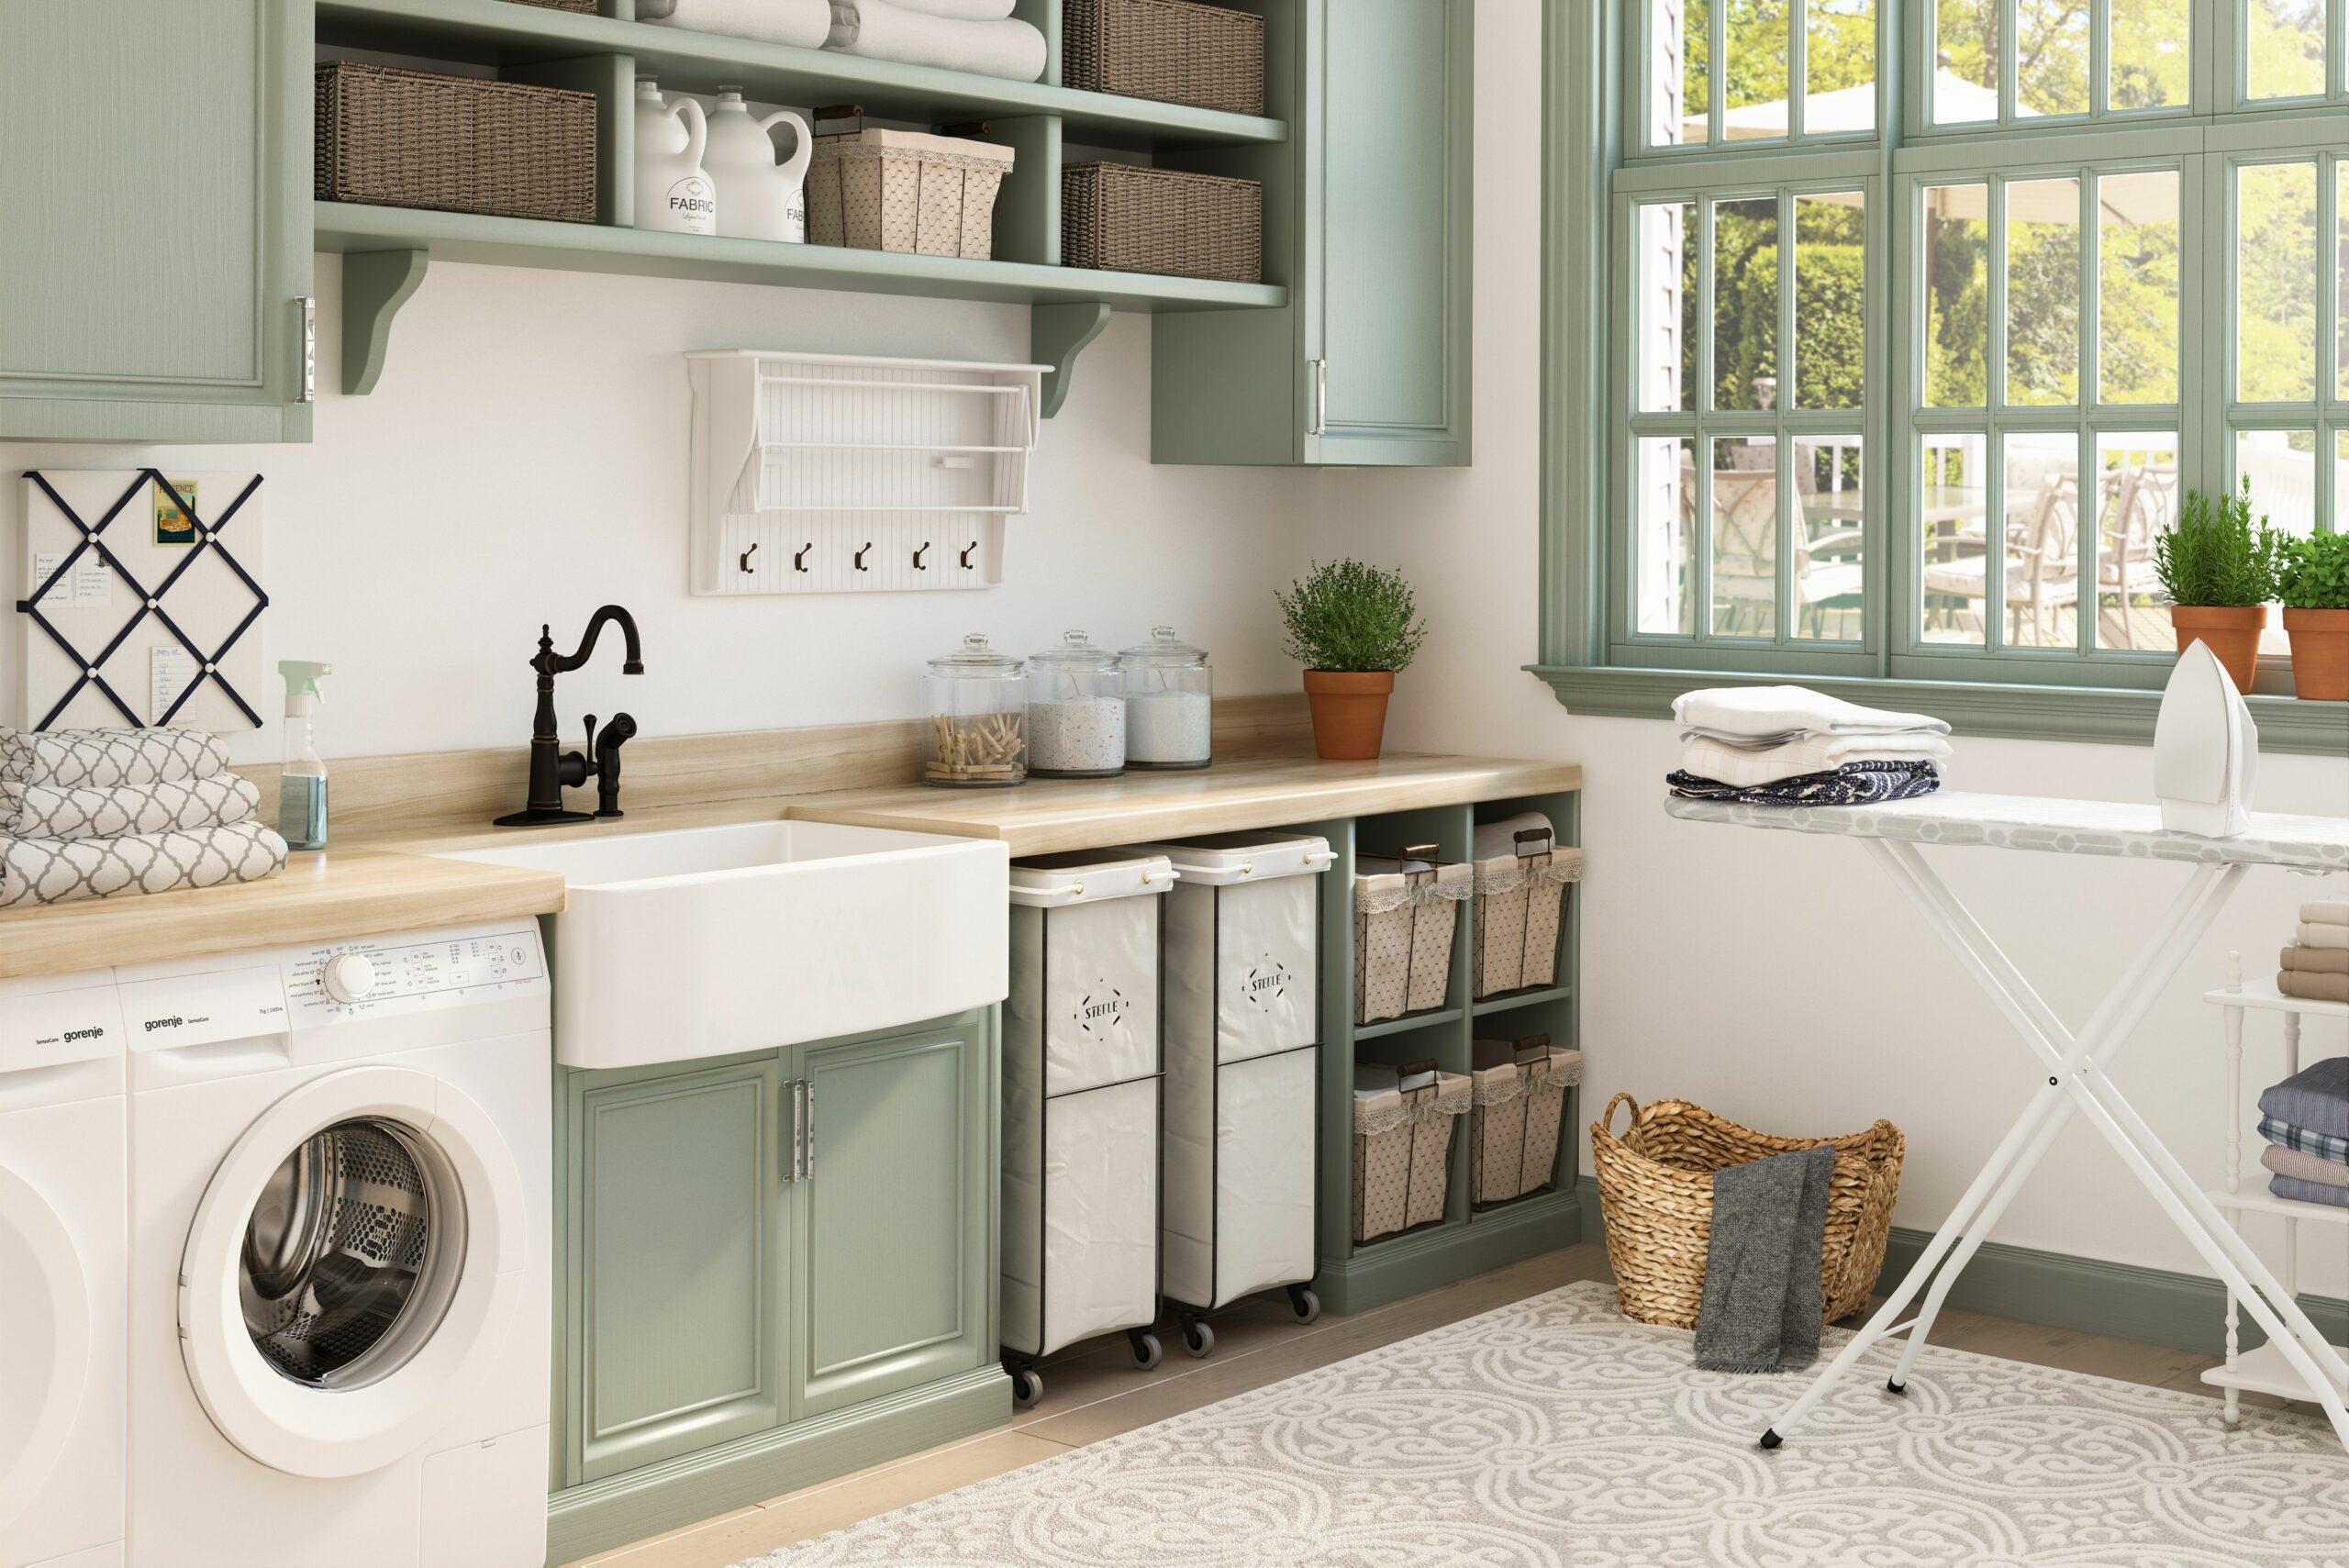 10 Essential Laundry Room Storage Ideas | Wayfair - laundry room storage ideas